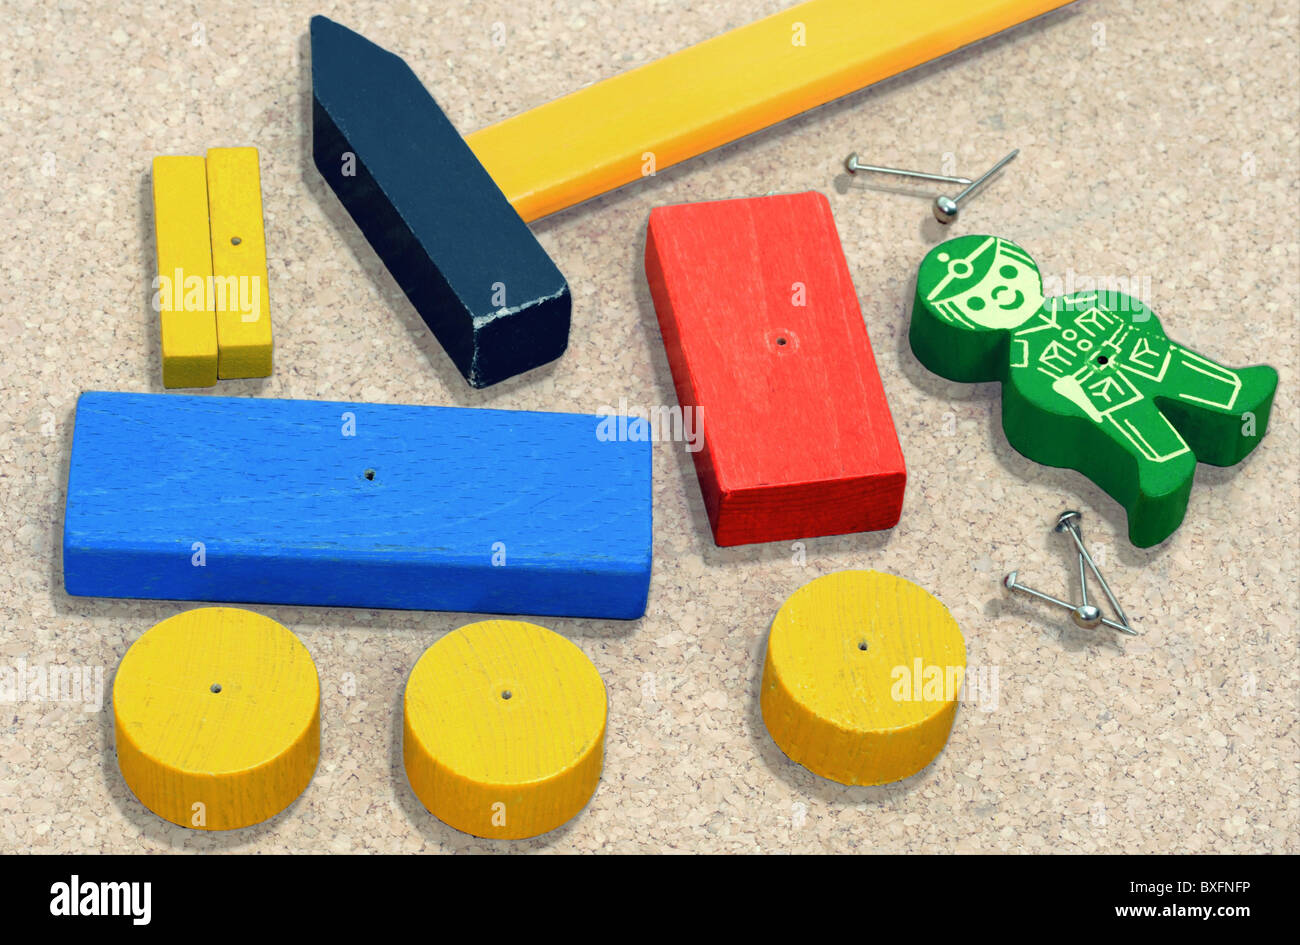 toys, toy train, mechanic puzzle, wooden toy blocks, building bricks, Germany, 20th century, historic, historical, - Stock Image